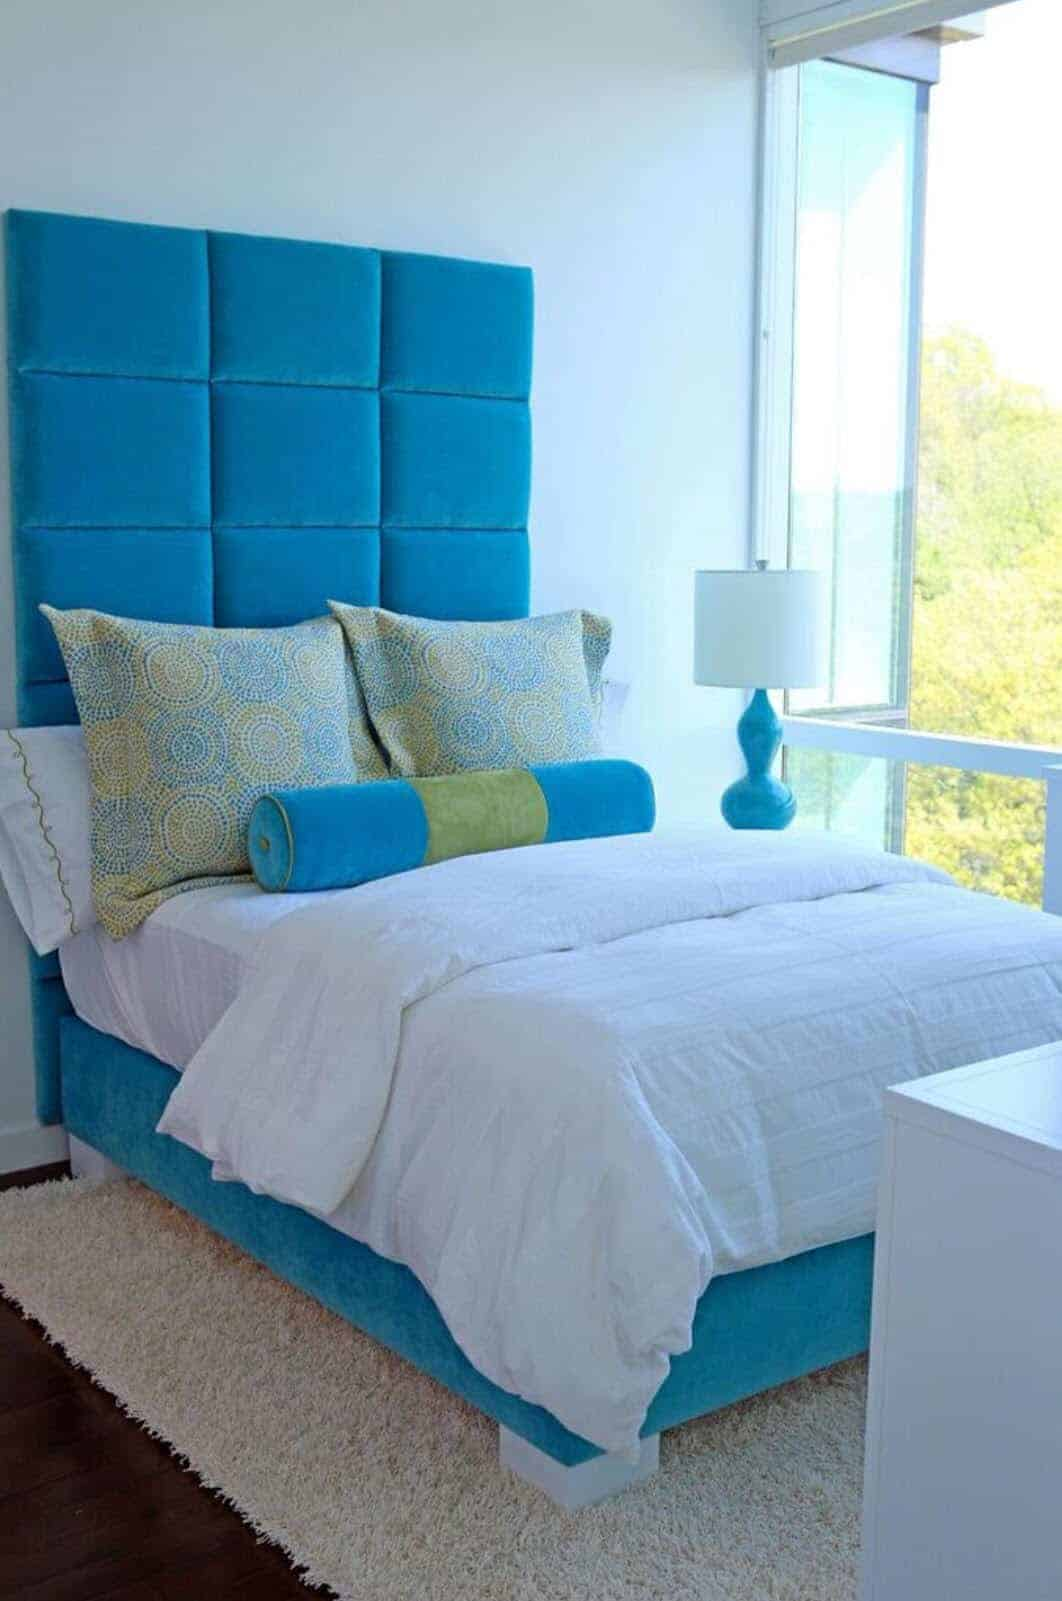 This bedroom is in a penthouse apartment in the Maestro, a luxury residence in Great Neck NY.